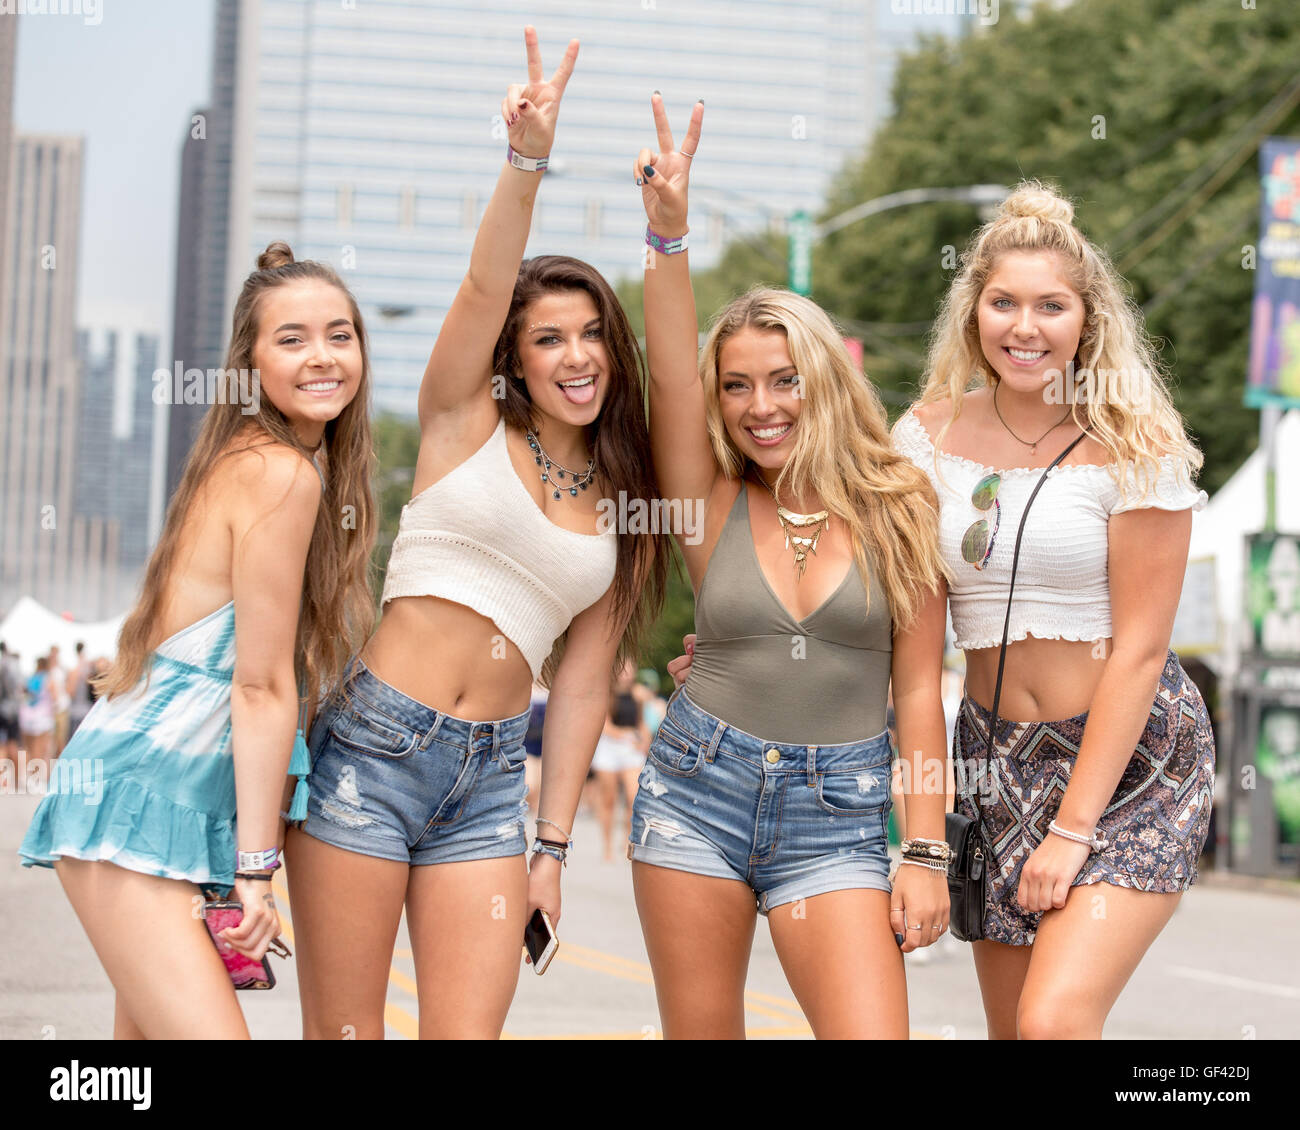 Chicago, Illinois, USA. 28th July, 2016. Female fans attend Lollapalooza Music Festival at Grant Park in Chicago, - Stock Image